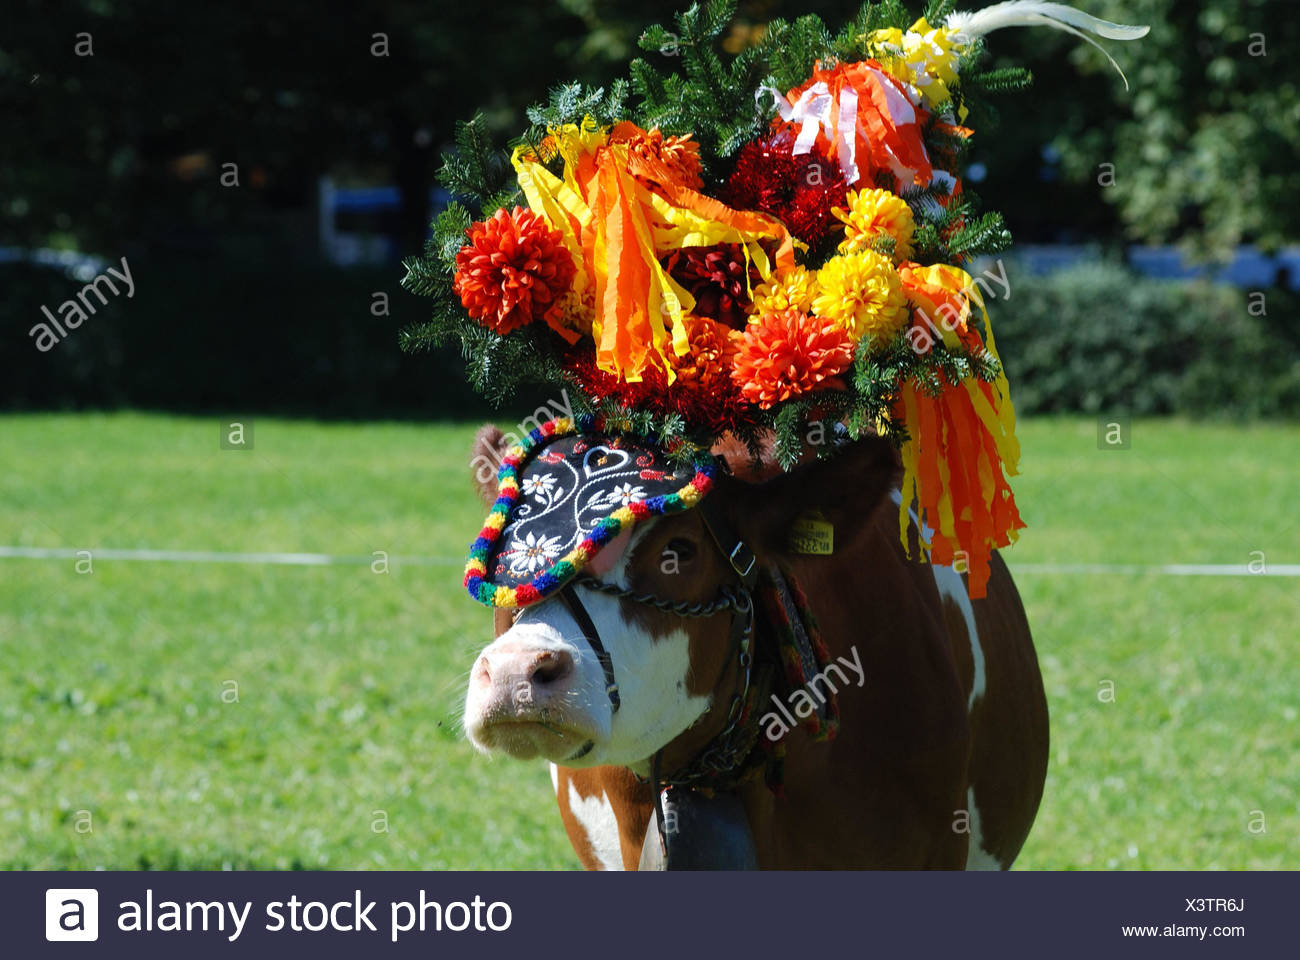 Almabtrieb, cow, headdress, meadow, medium close-up, detail, tradition, traditions, autumn, Alps region, rurally, animals, cattle, cow, blotch cattle, pasture, decorated, flowers, floral decoration, cattles, tree bark, Viehscheid, agriculture, cattle economy, holiday, - Stock Image